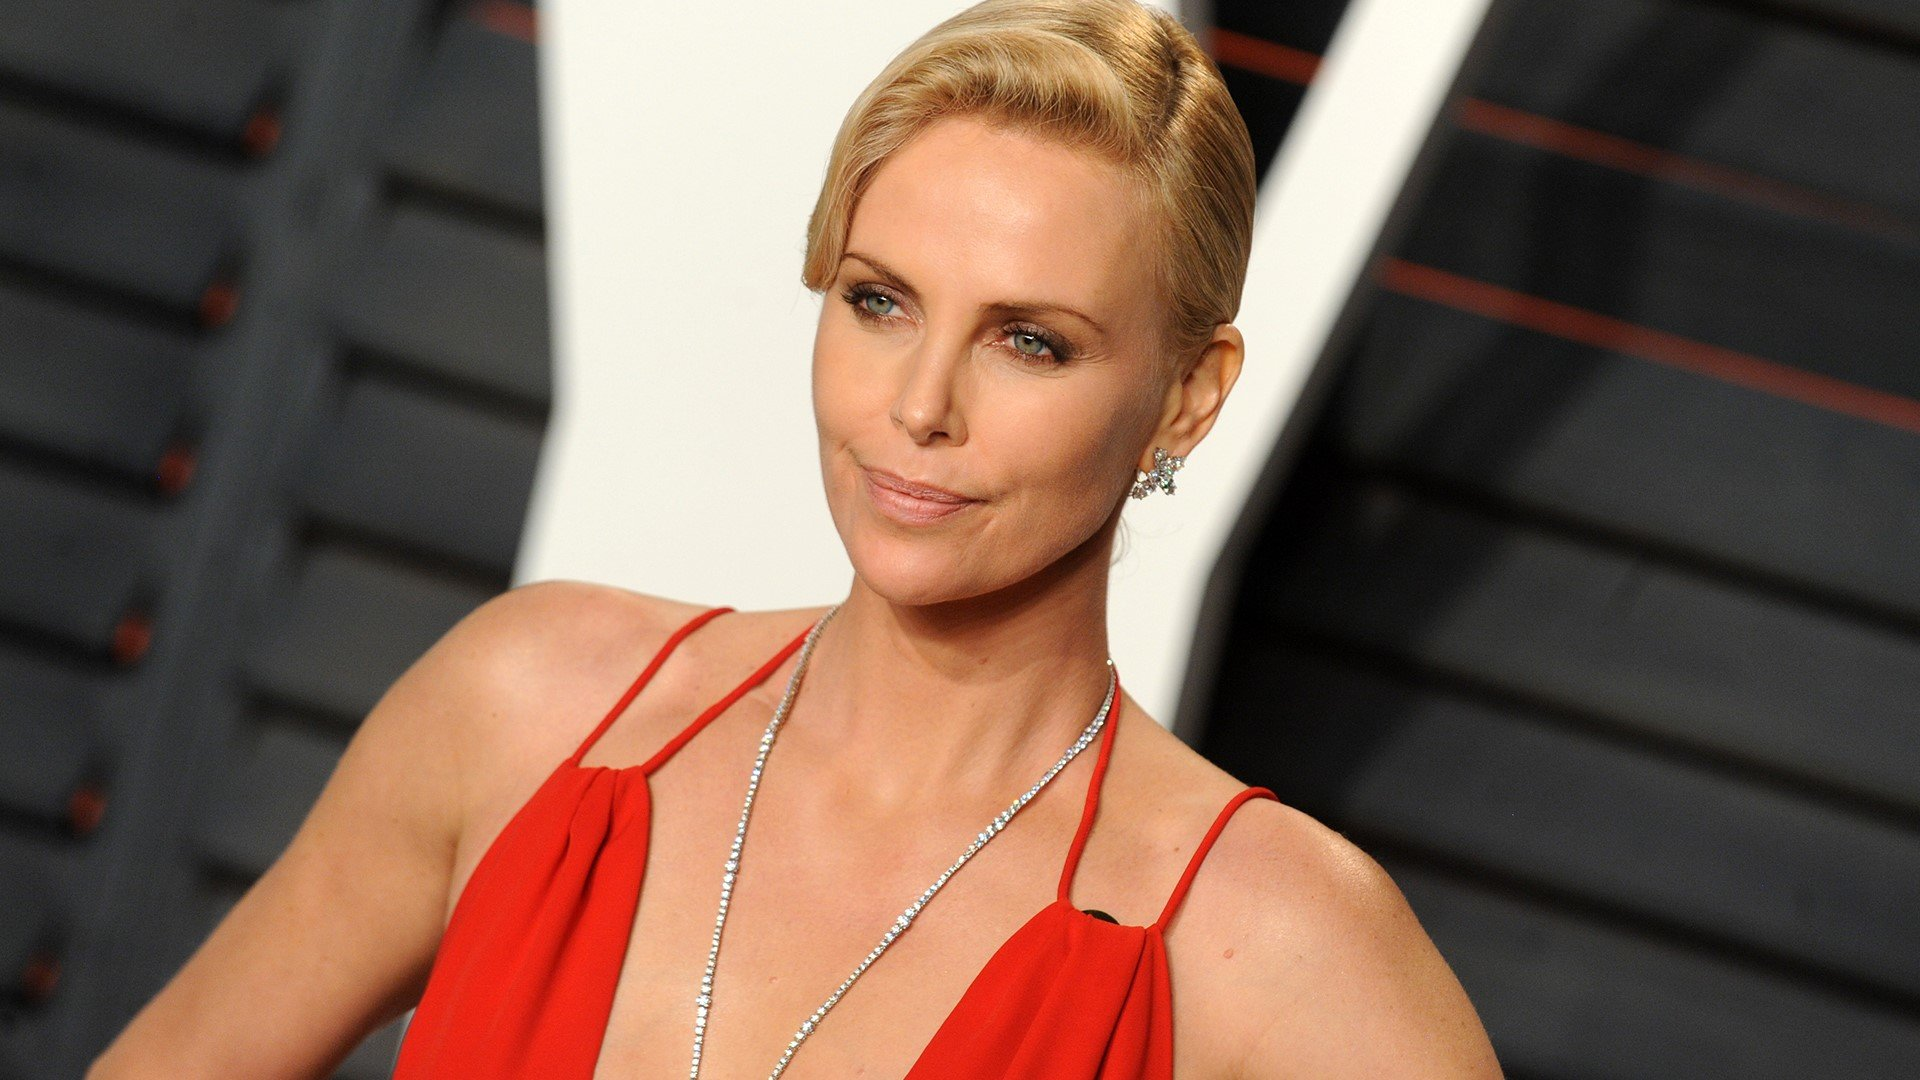 Charlize Theron Wallpapers for Computer